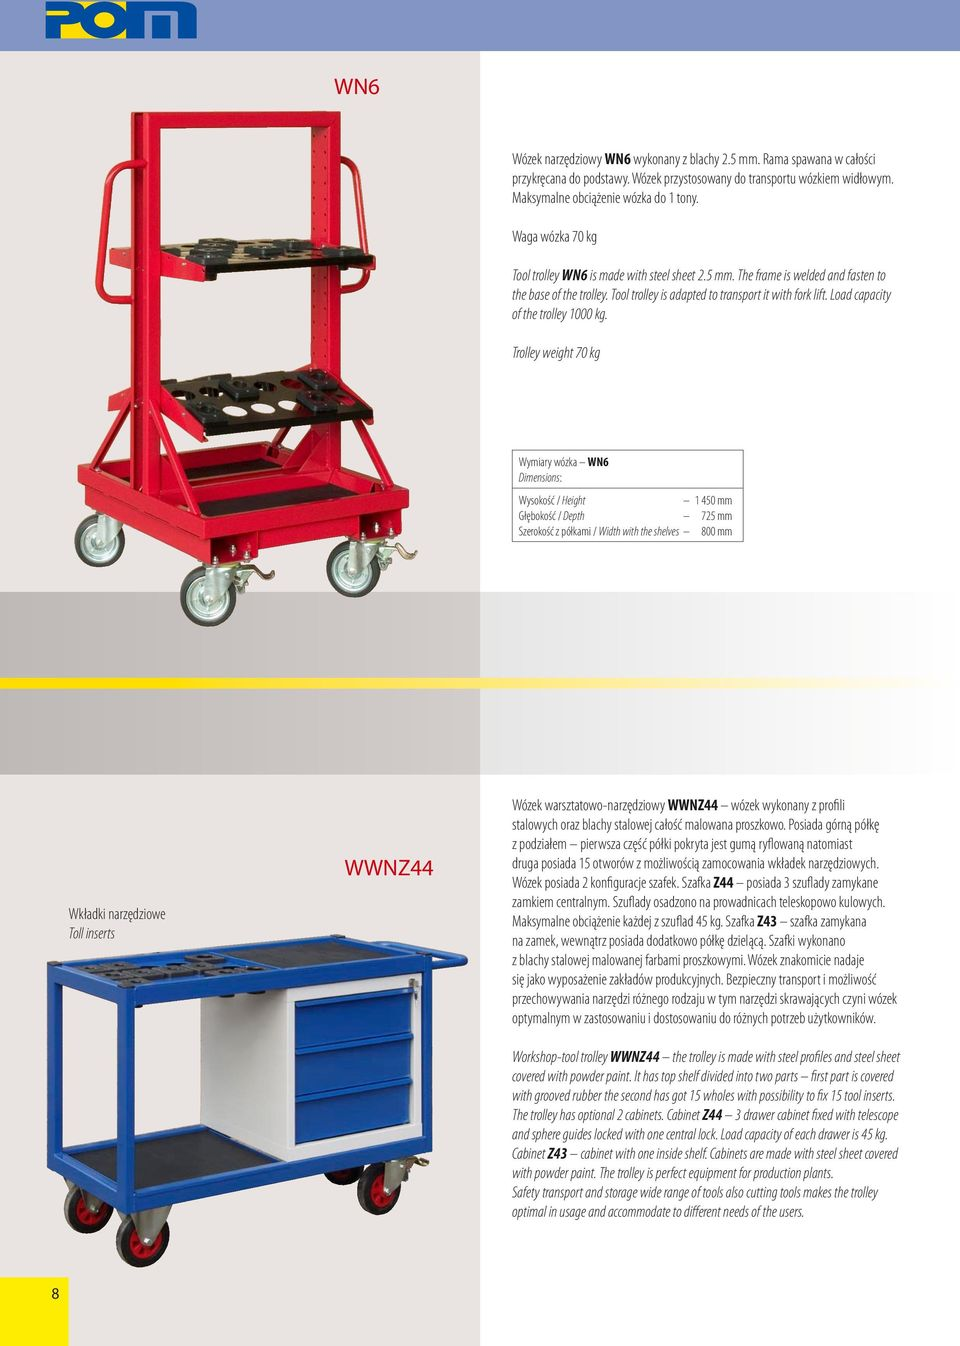 Load capacity of the trolley 1000 kg.